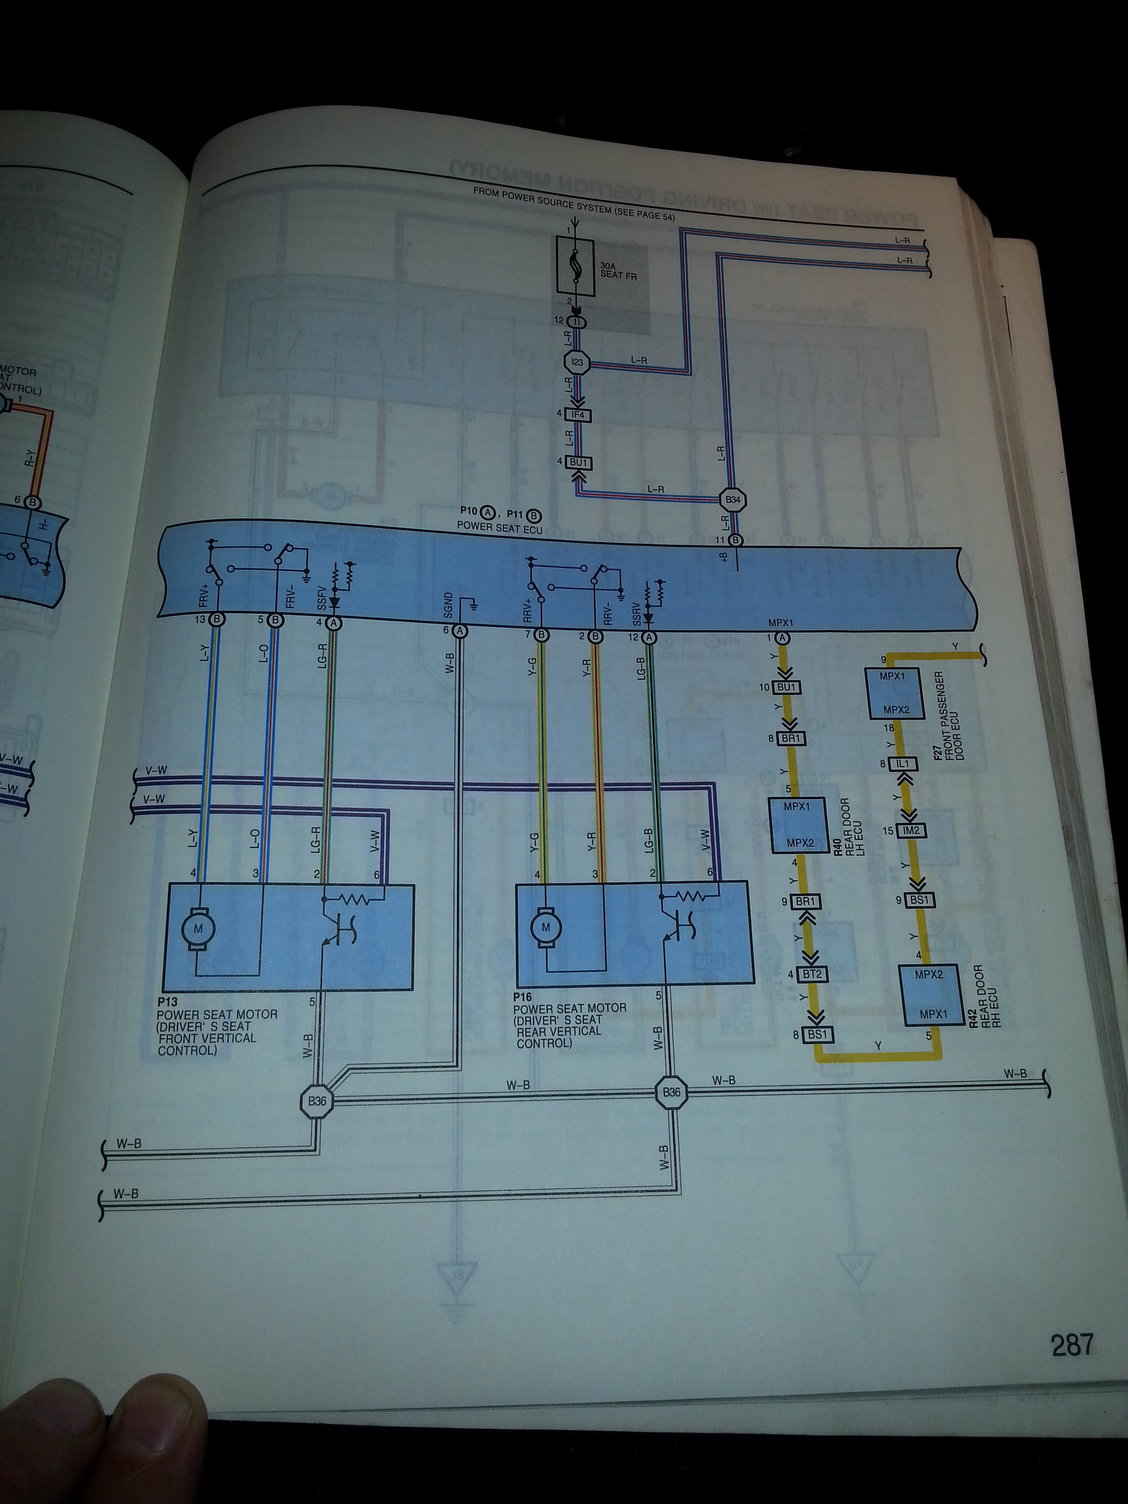 hight resolution of wiring diagram chart for 1999 ls400 should be similar to 1997 but verify